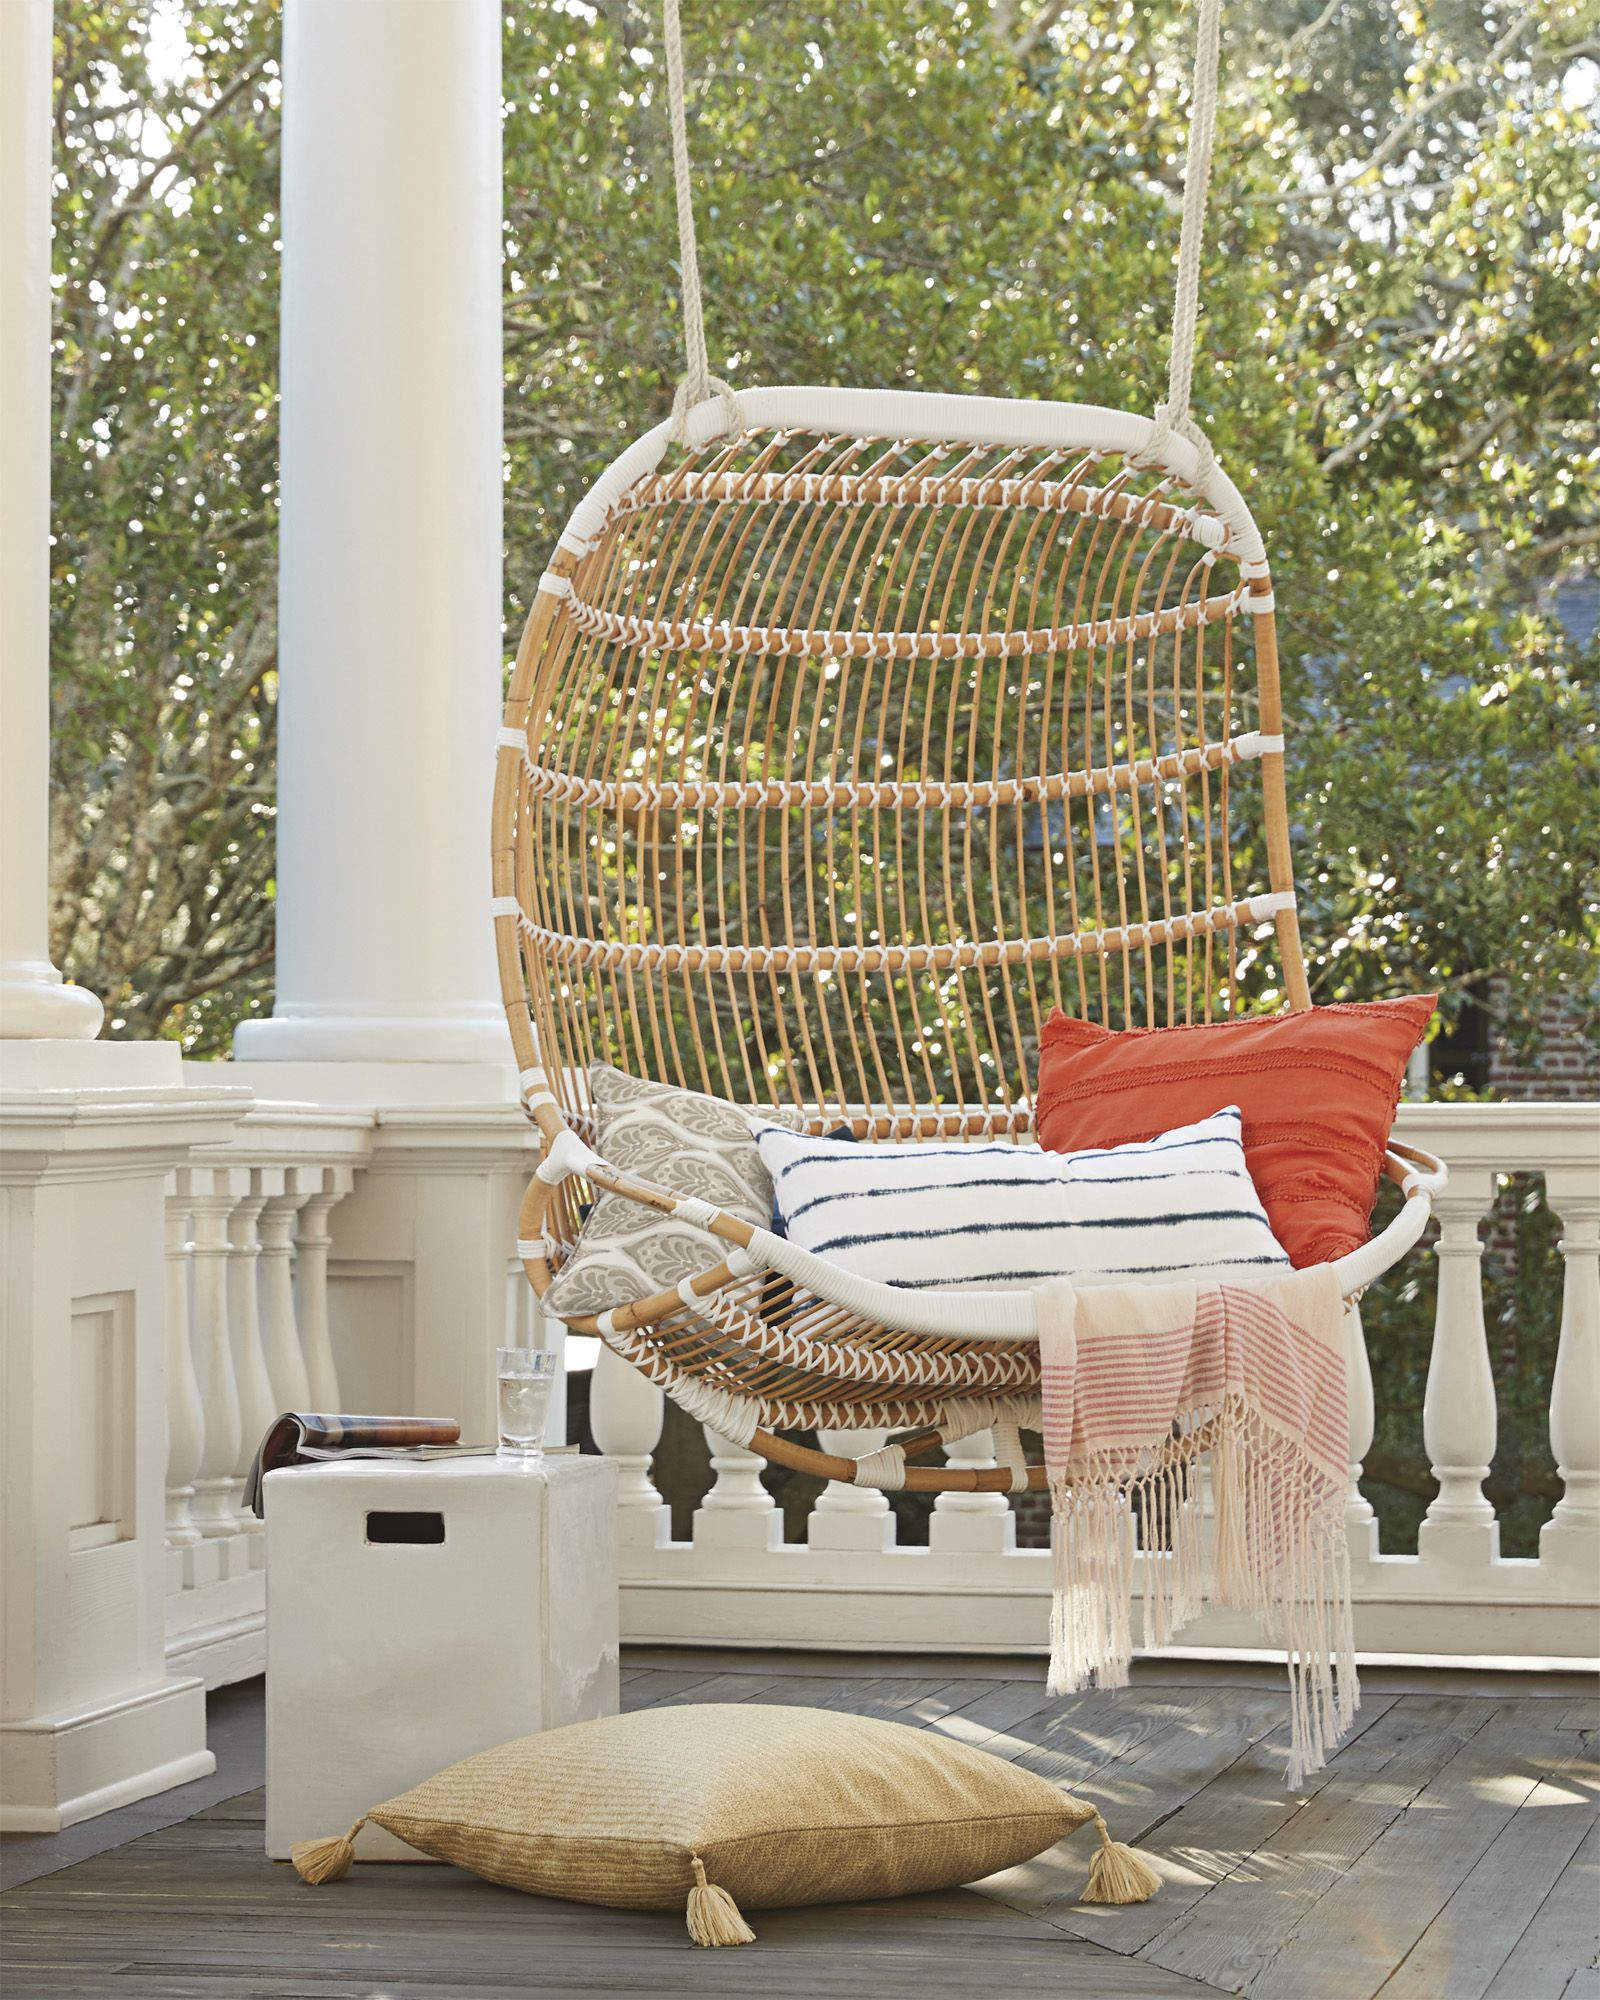 Hanging Chairs Garden Furniture Zero Gravity Lawn Chair Target Double Rattan Chairdouble